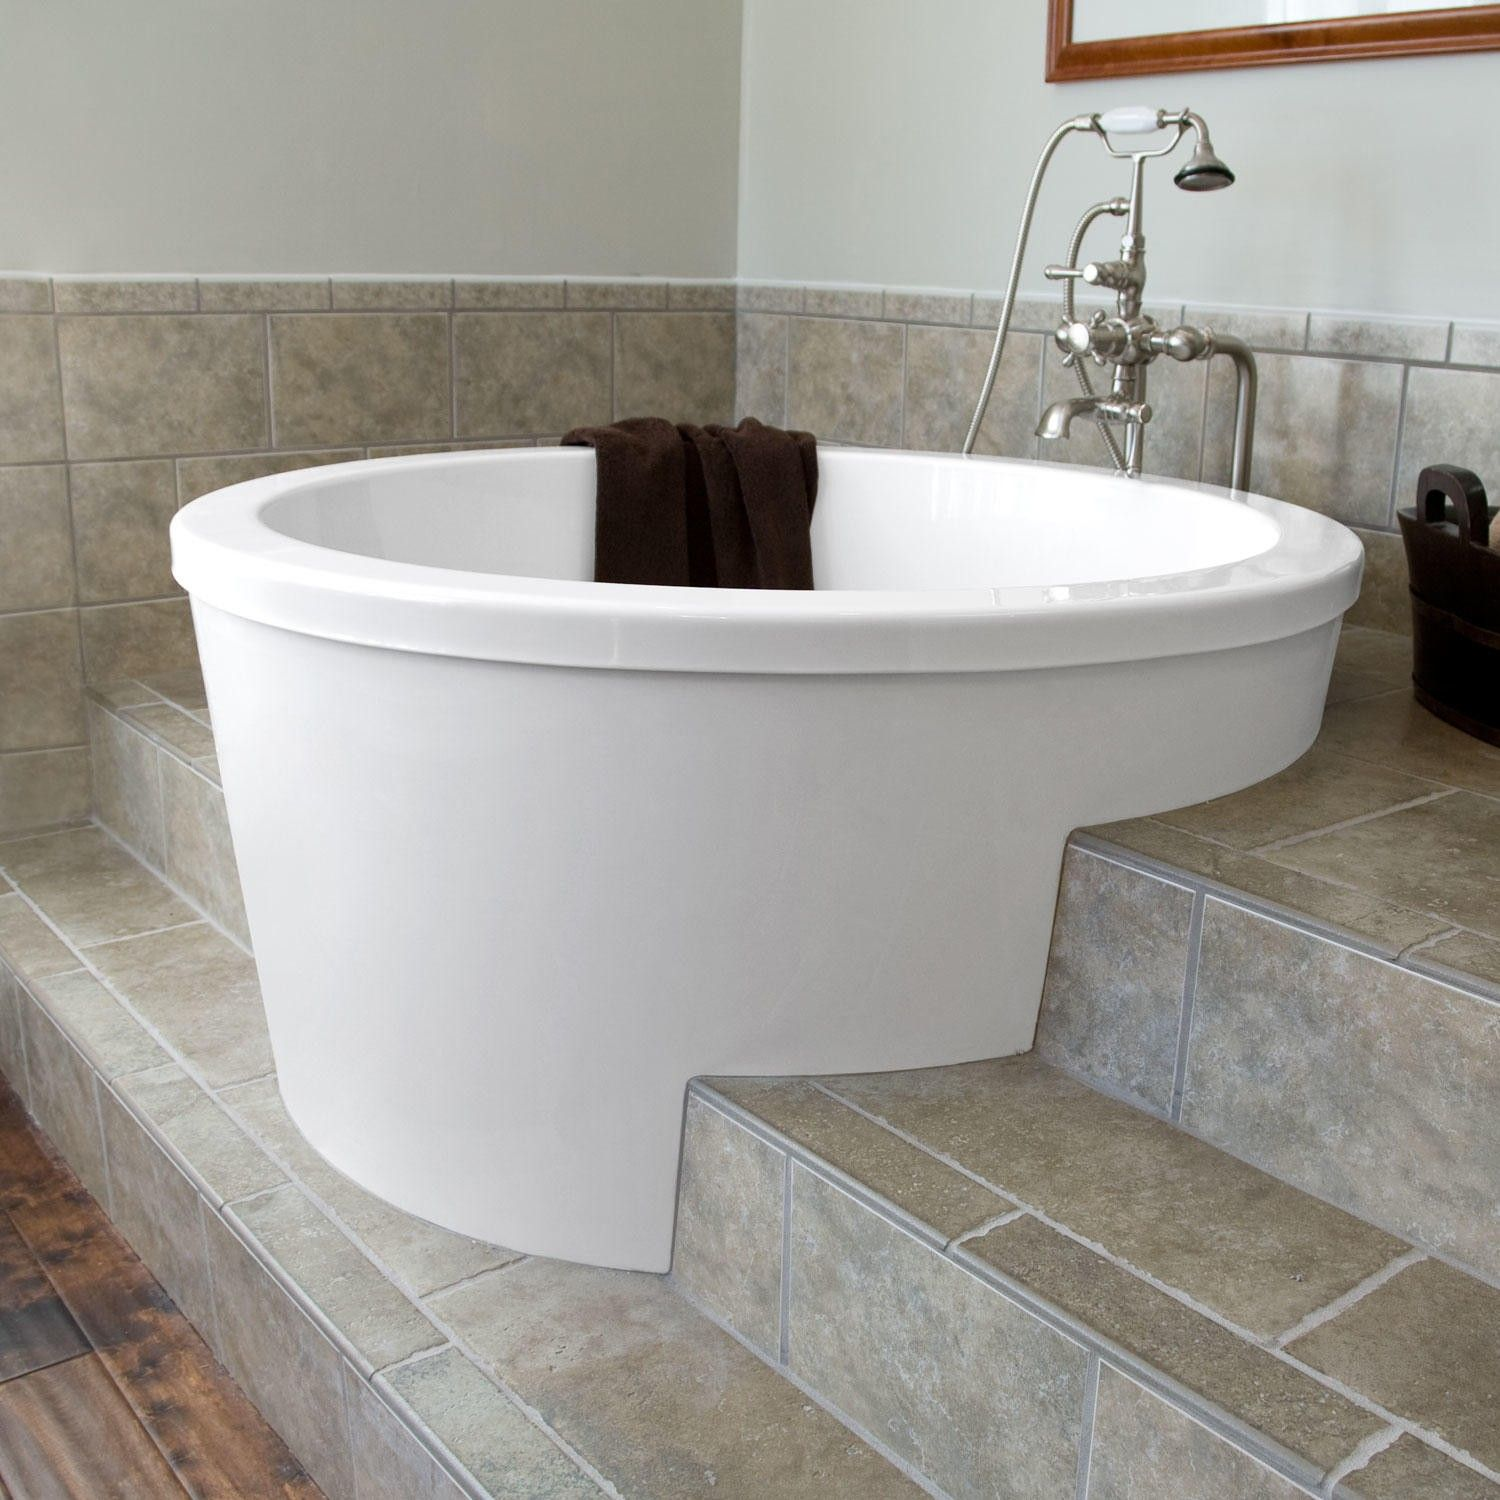 47 Caruso Round Japanese Soaking Tub Like The Way Walk: drop in tub dimensions